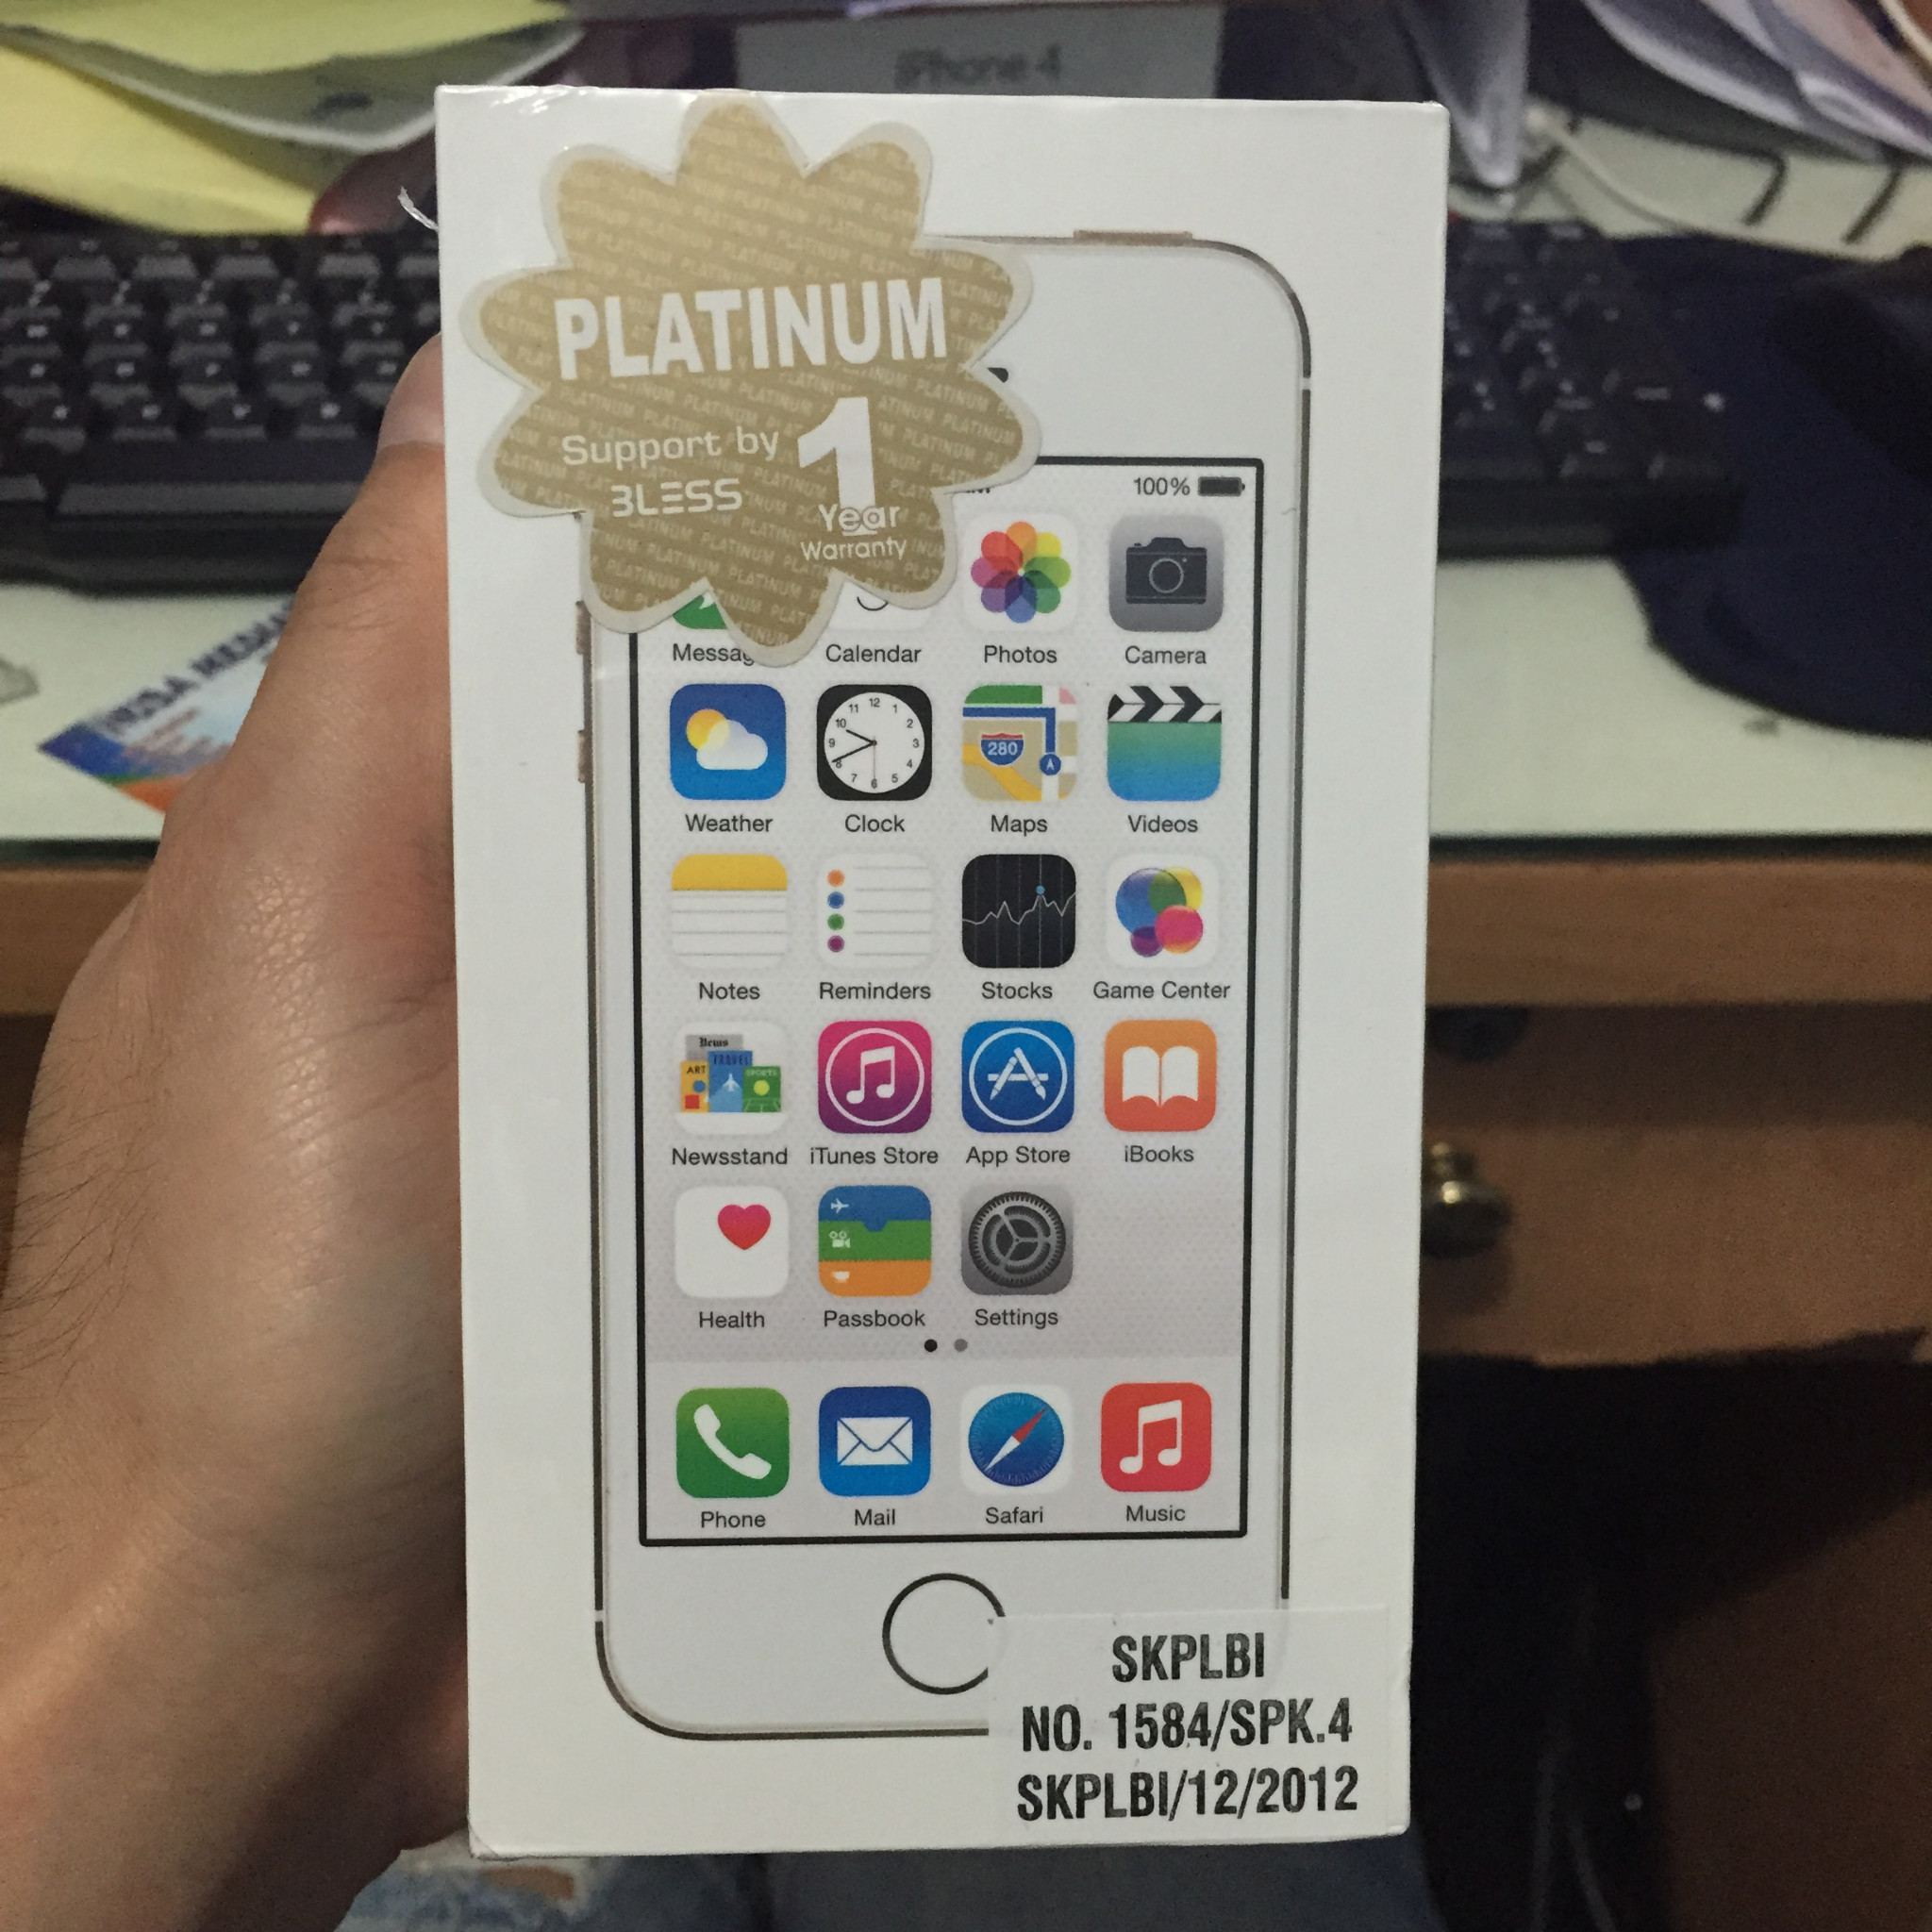 Jual Aktif Iphone 5s 32gb Gold Garansi International Platinum 1 Thn